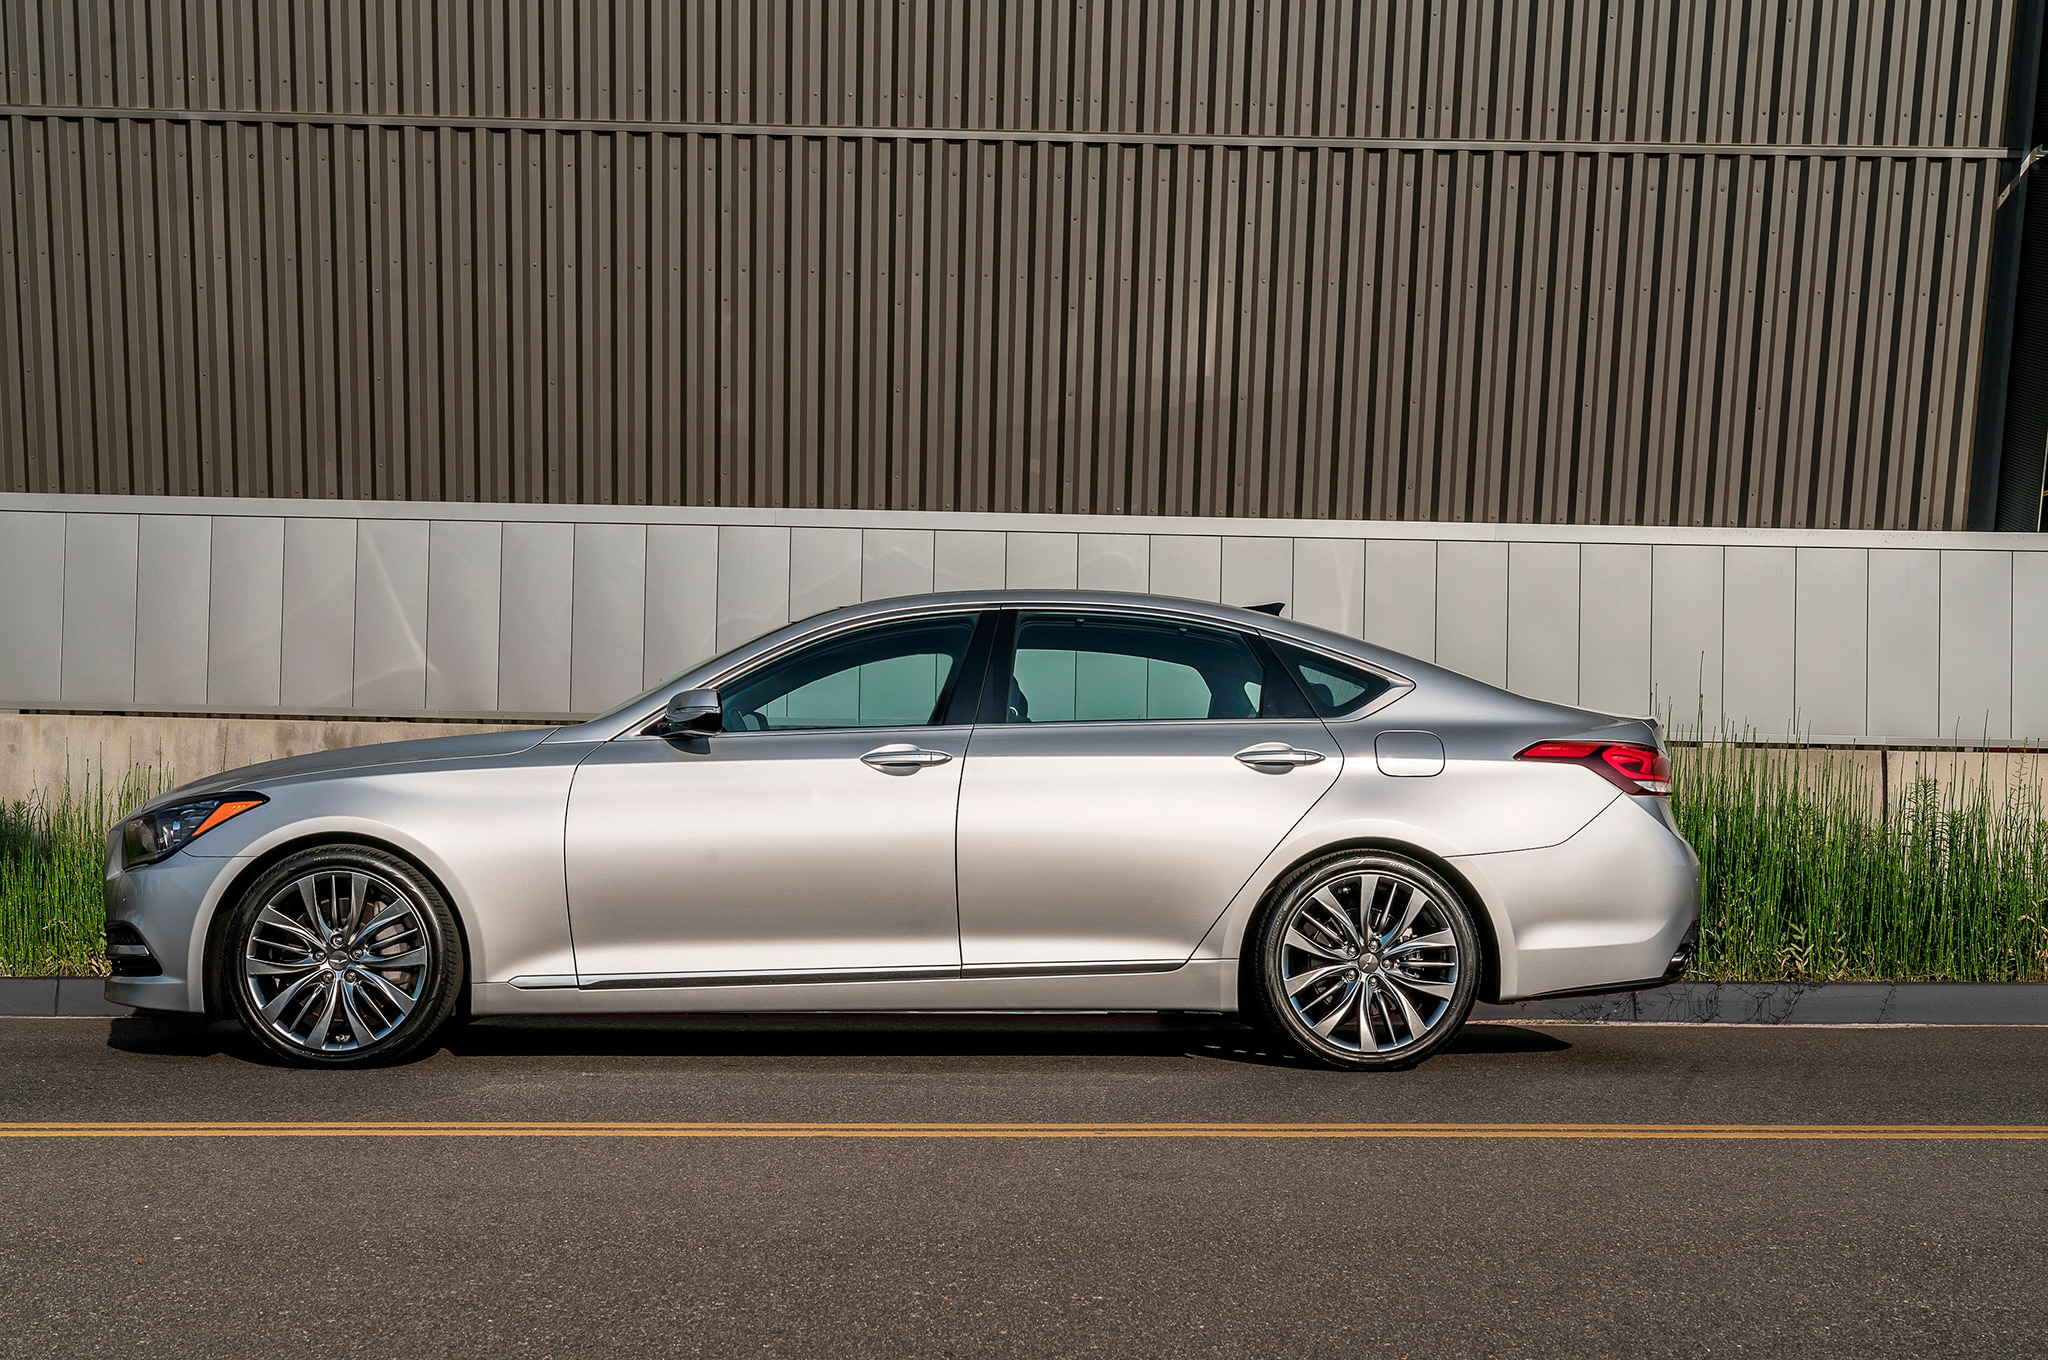 2017 Genesis G80 RWD 5.0 Ultimate One Week Review ...